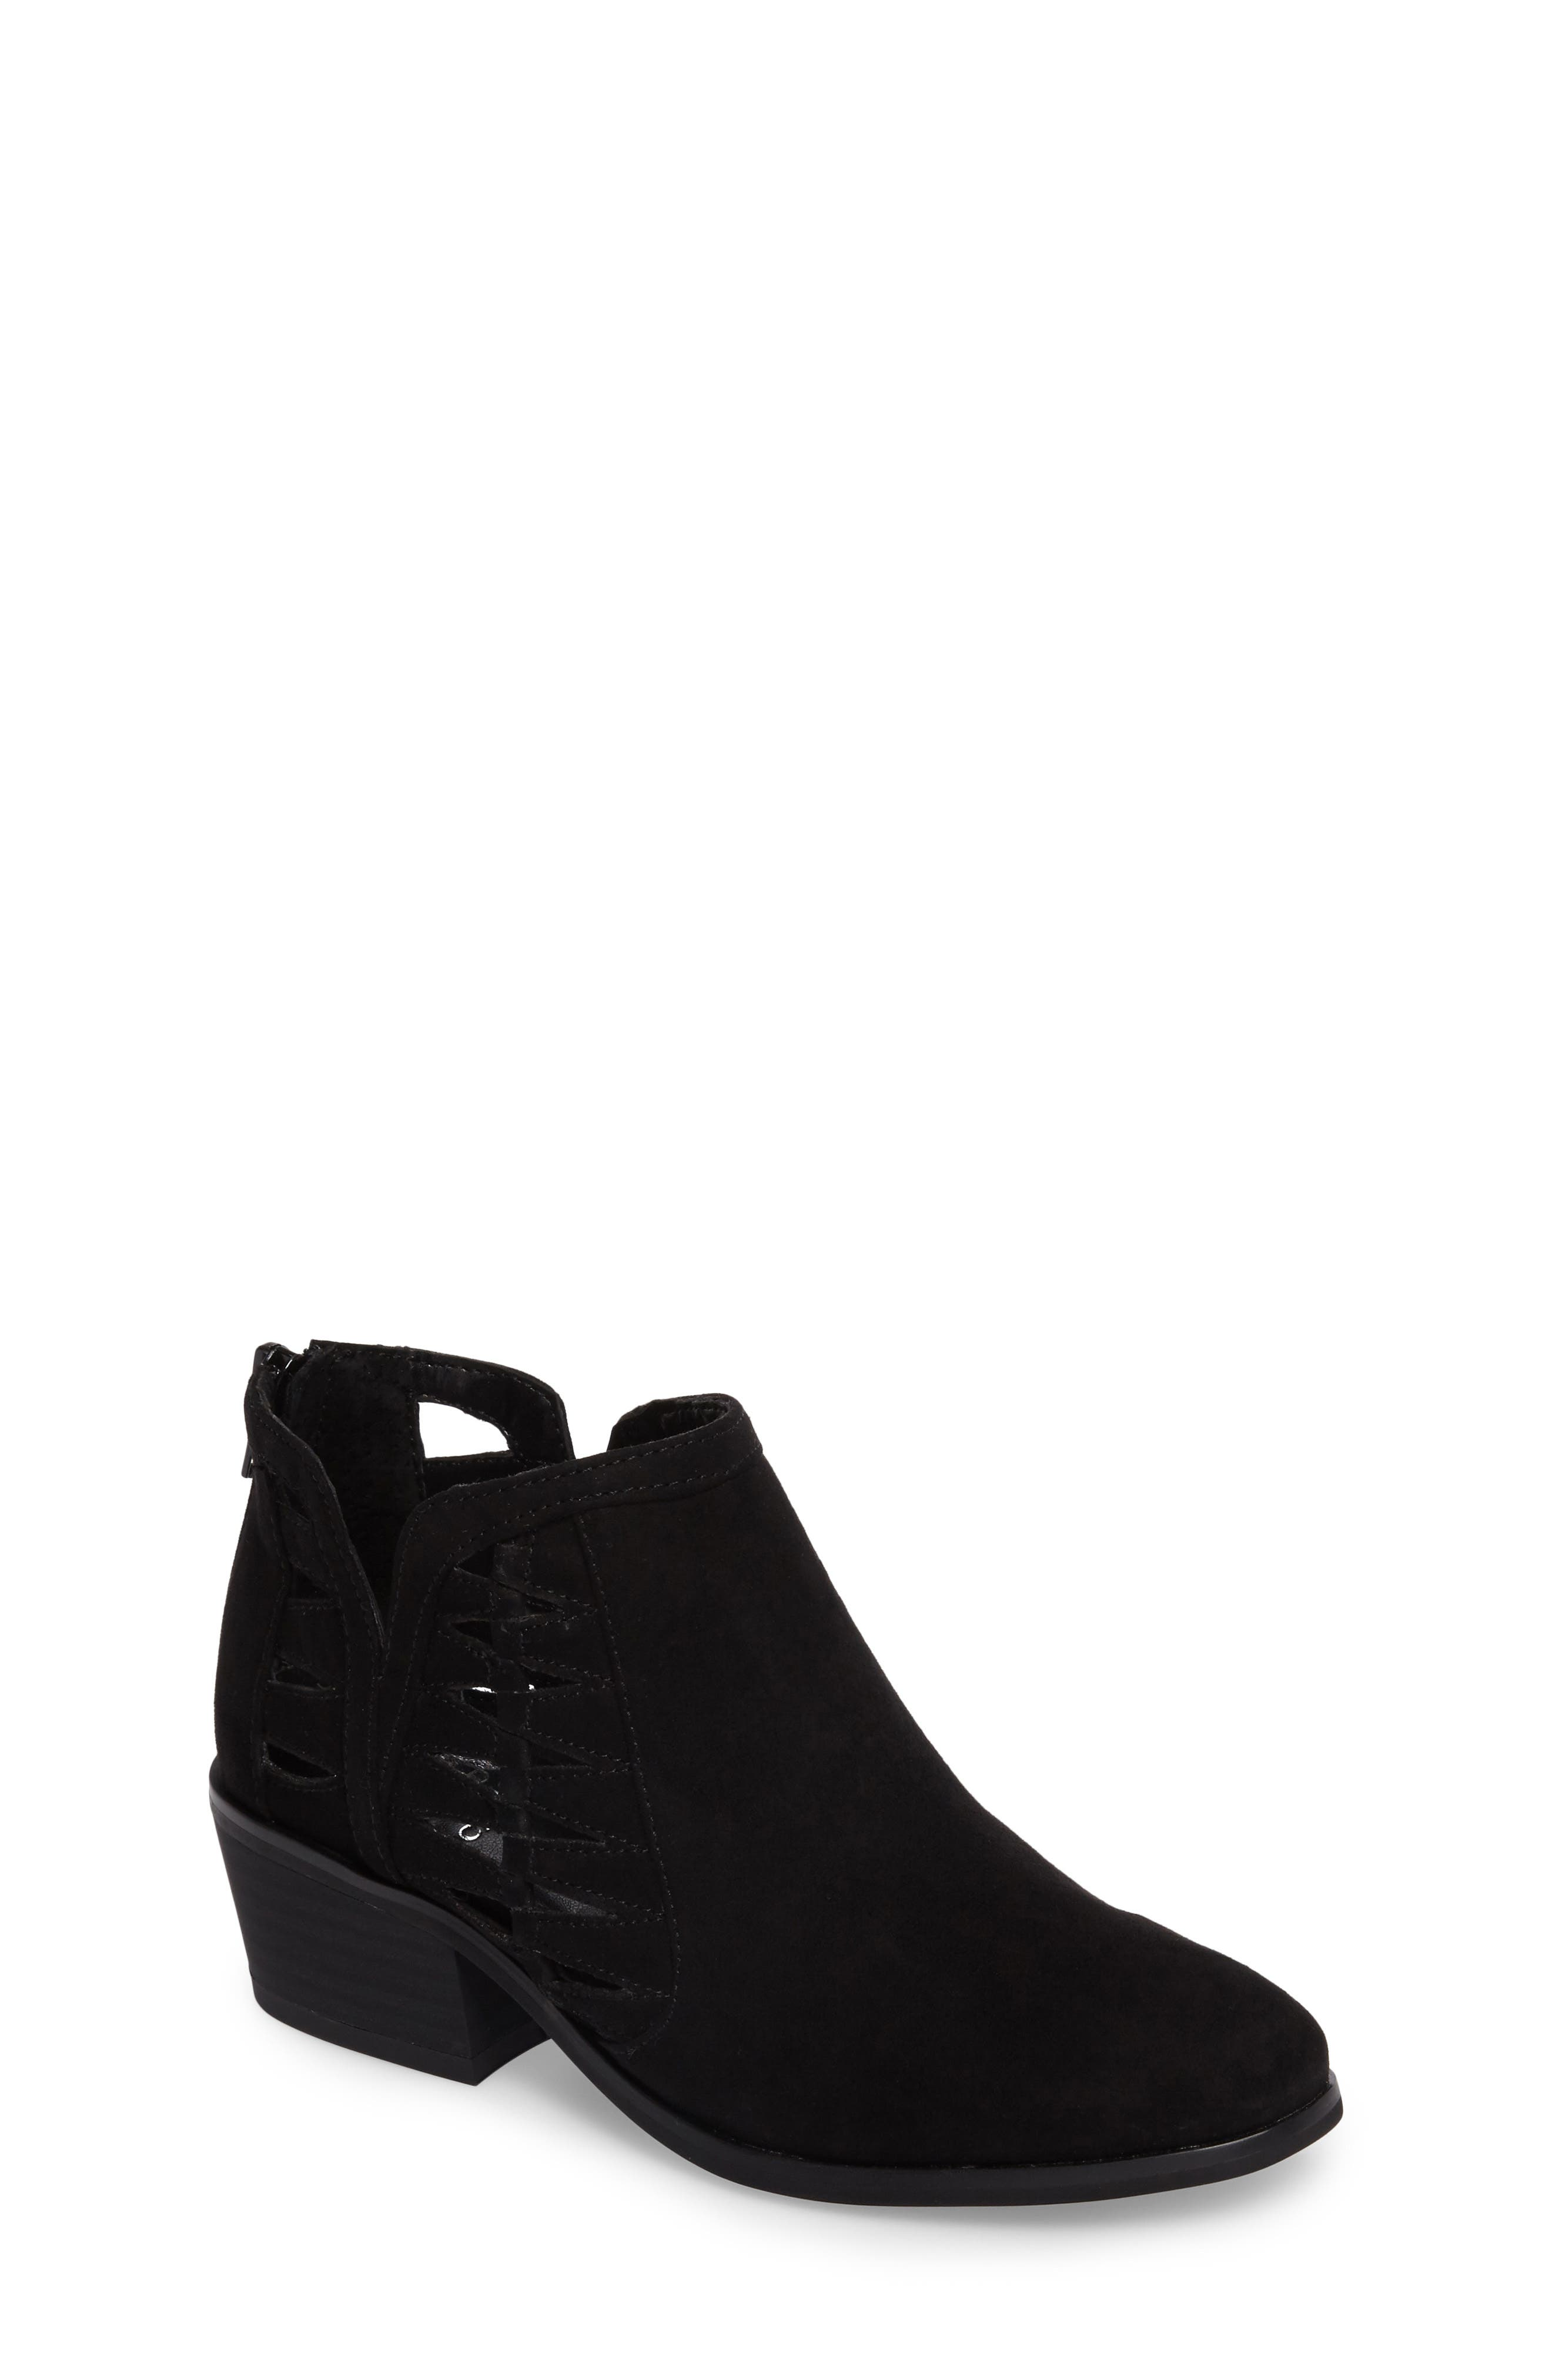 Girls' Dress & Special Occasion Shoes | Nordstrom